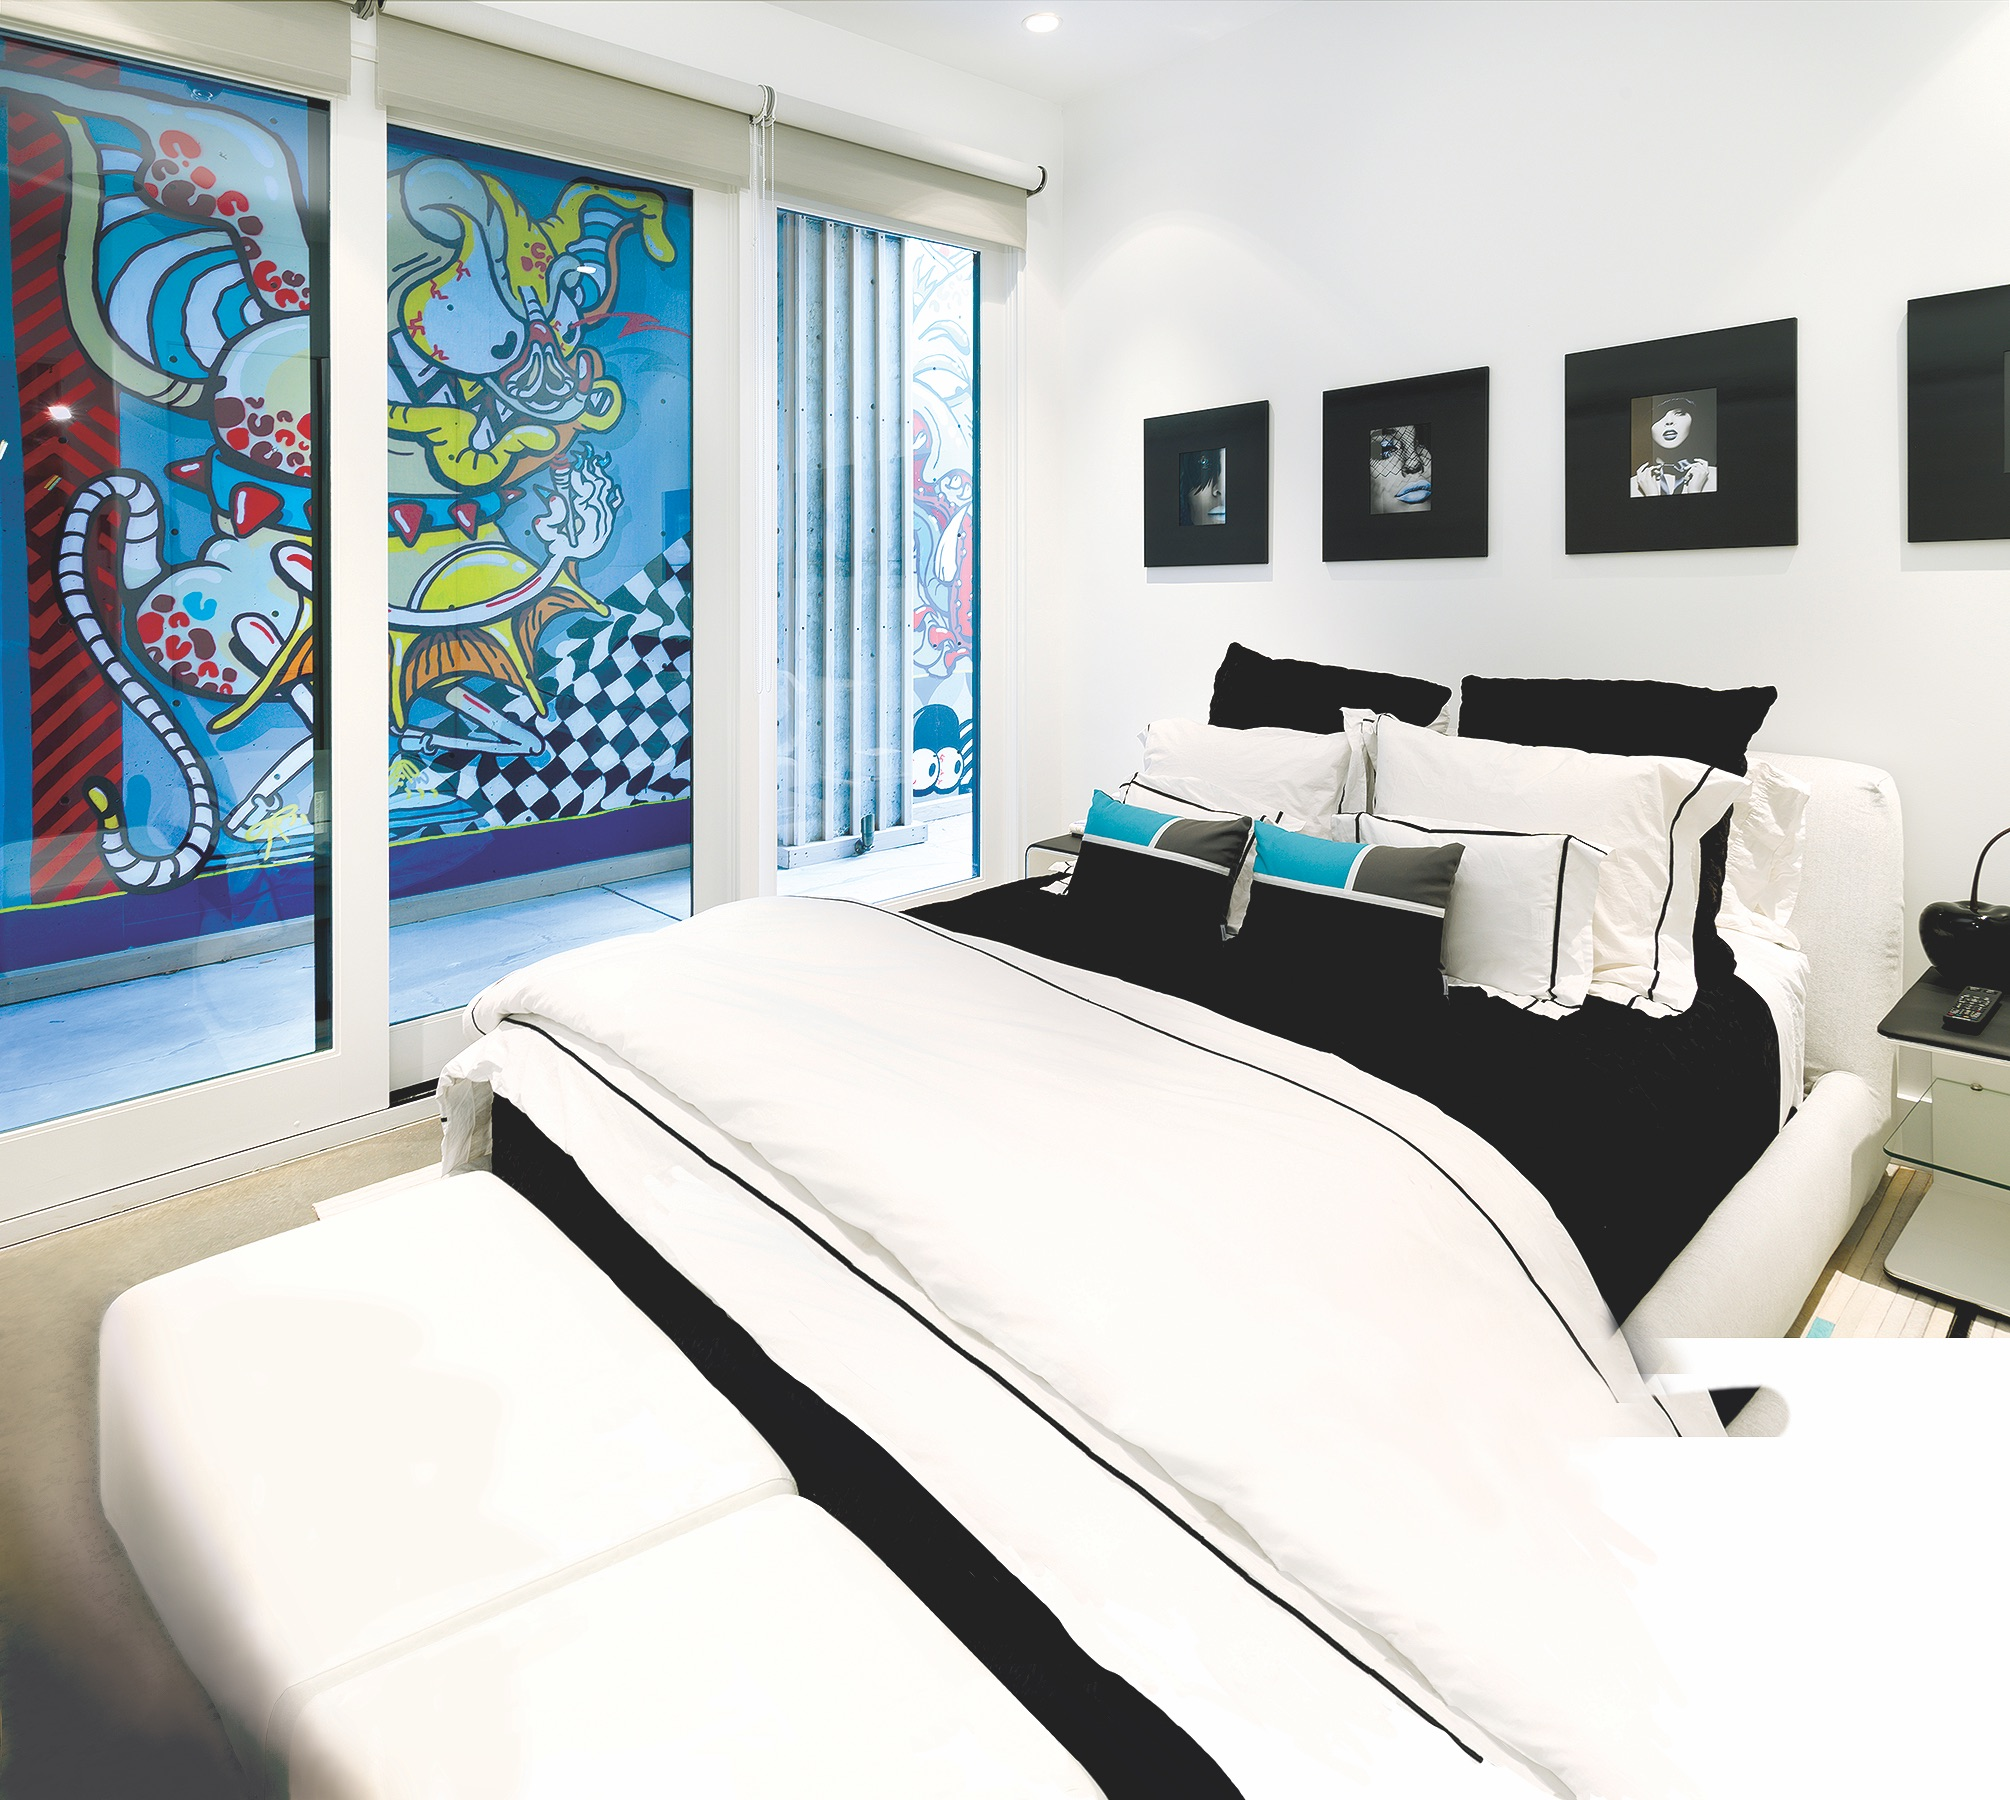 Vail Blue Bed